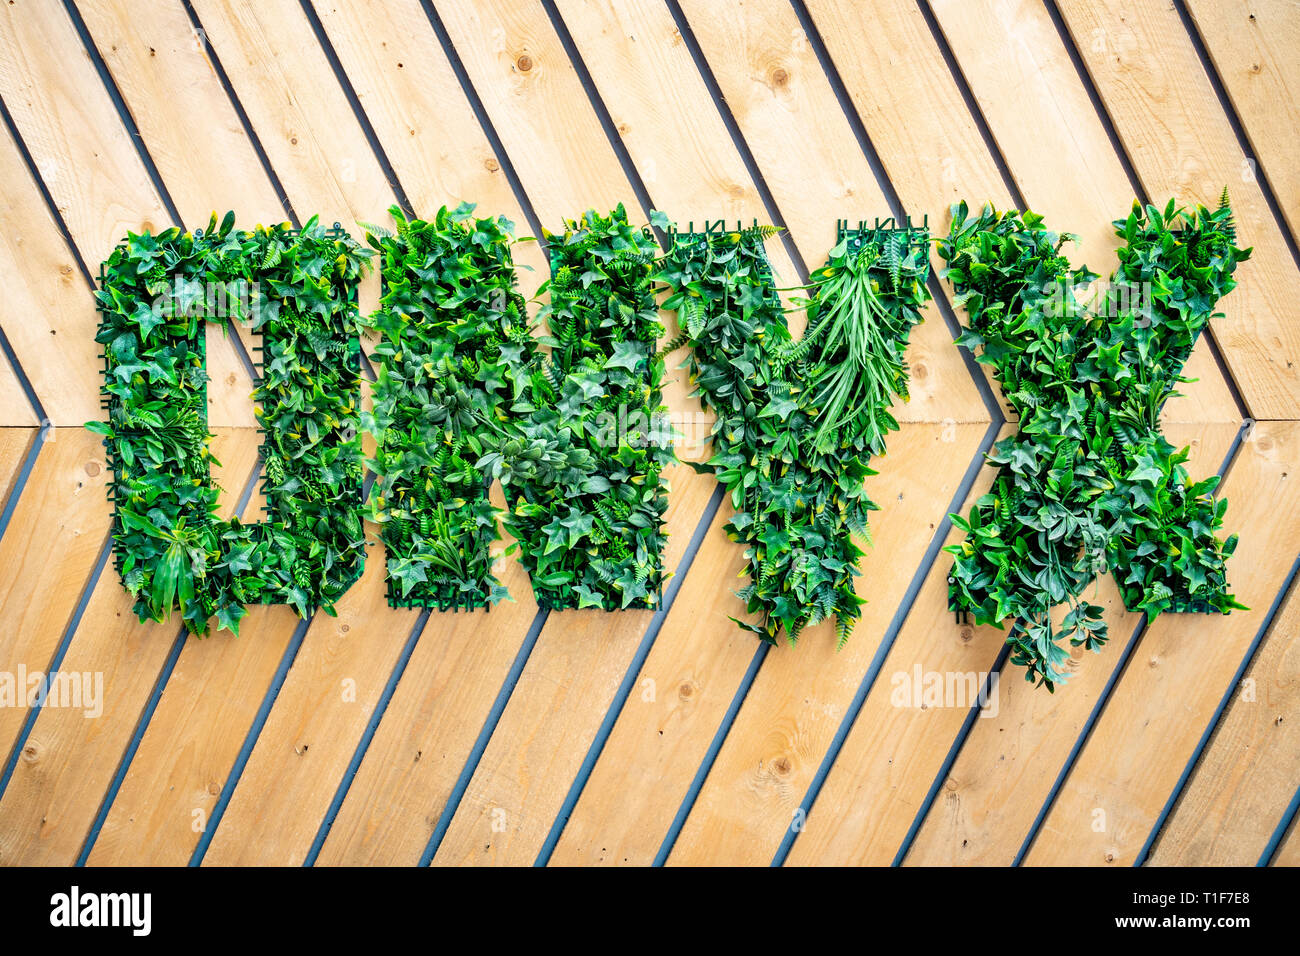 Onyx name logo planted in three-dimensional sign made with greenery plants at a building development Stock Photo